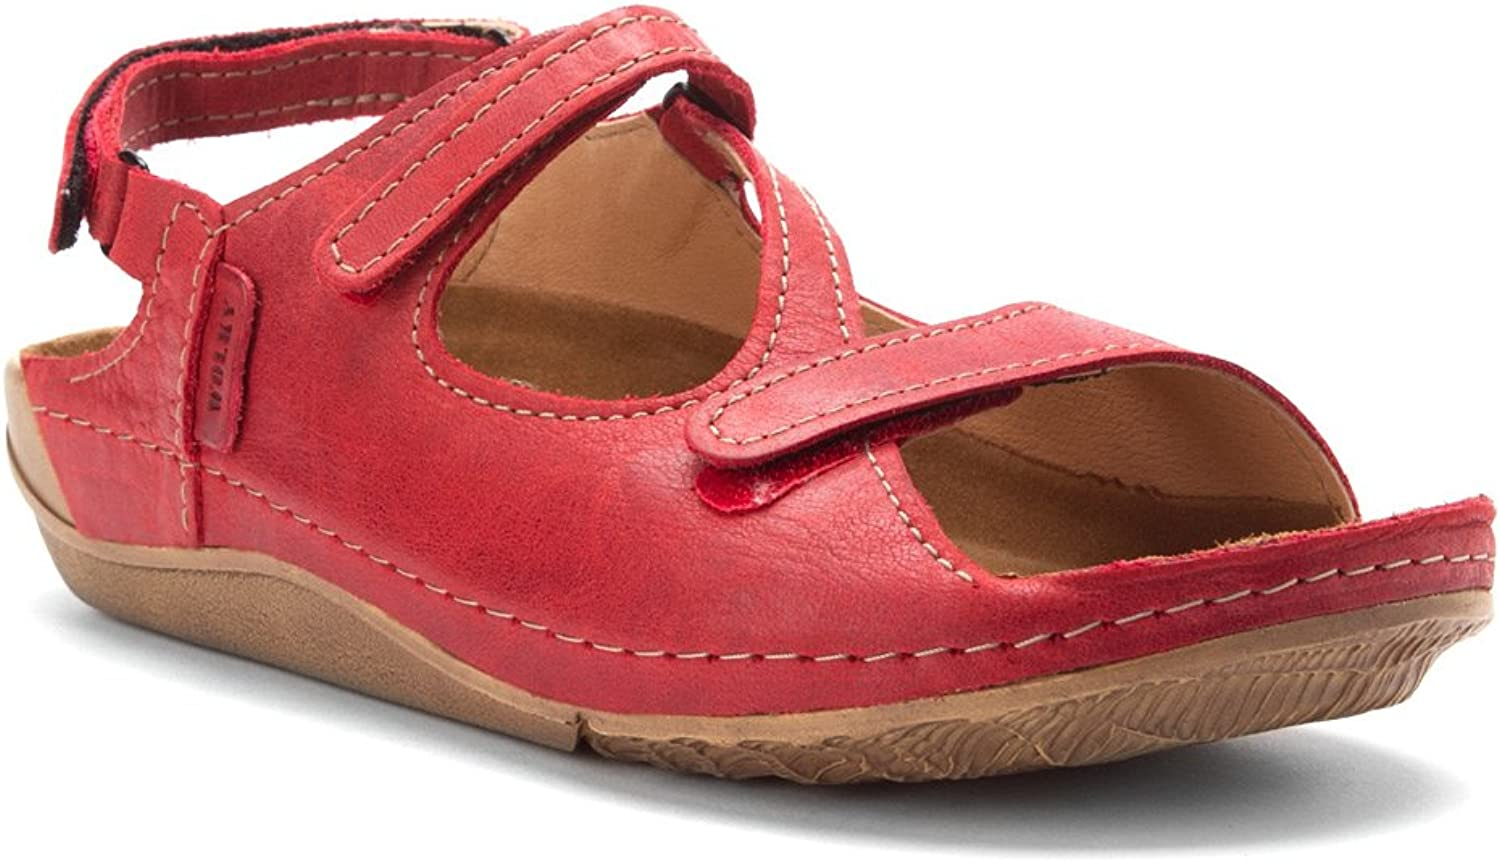 Wolky Womens 533 Leif Sandal